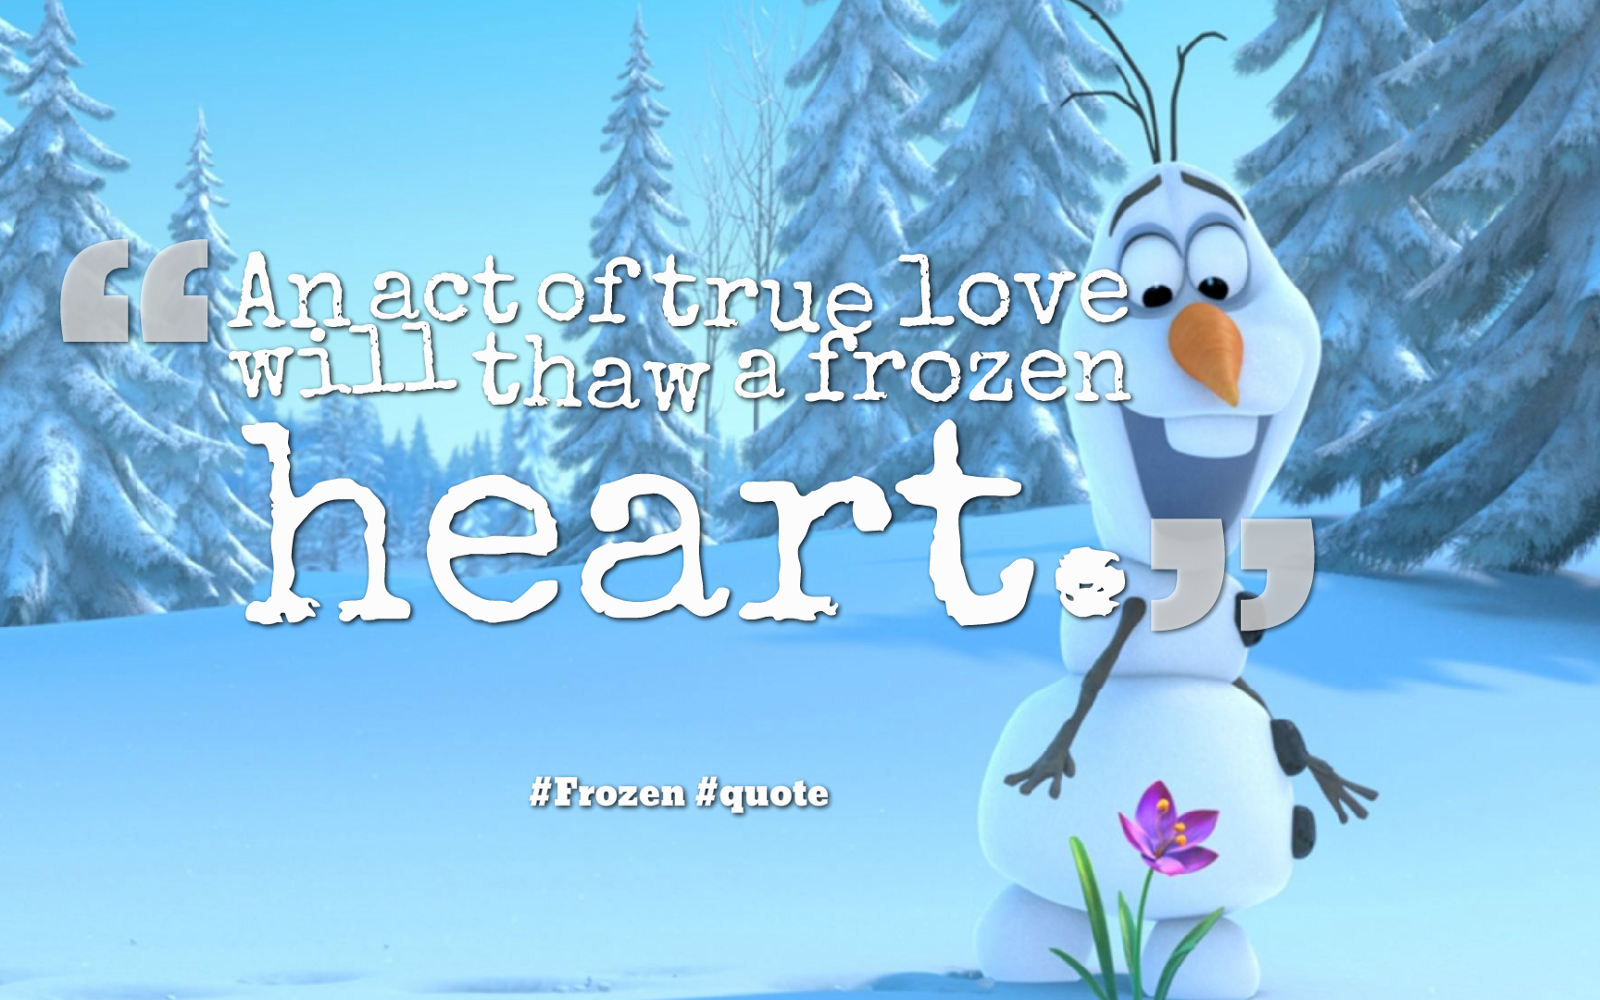 Top 12 Frozen Tundra Quotes: Famous Quotes & Sayings About ...